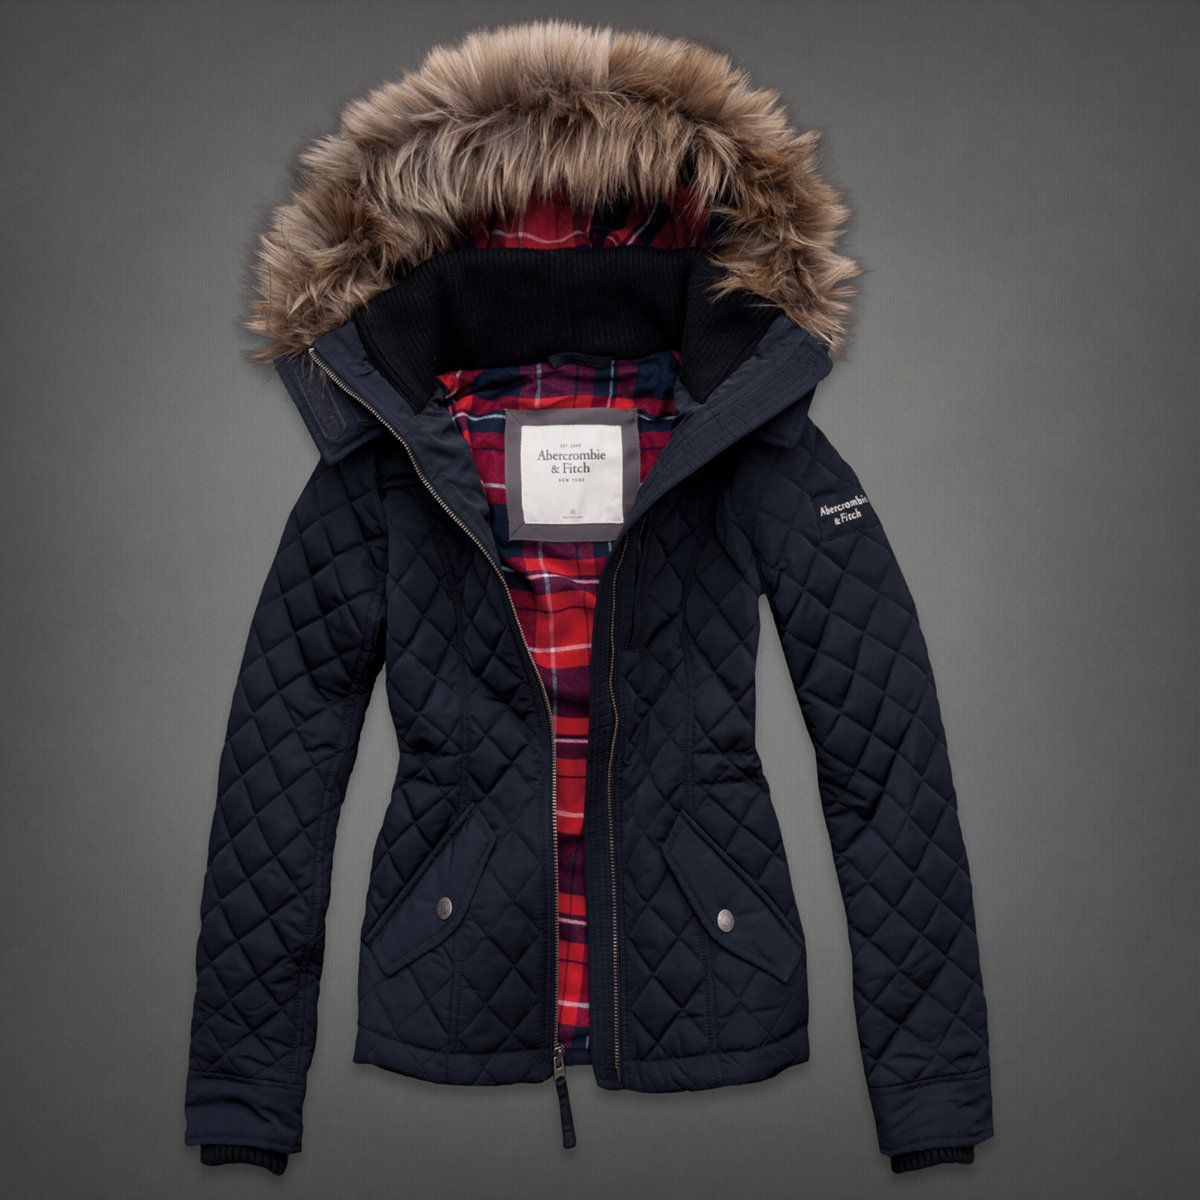 Womens Coats & Jackets | Clearance | Abercrombie & Fitch